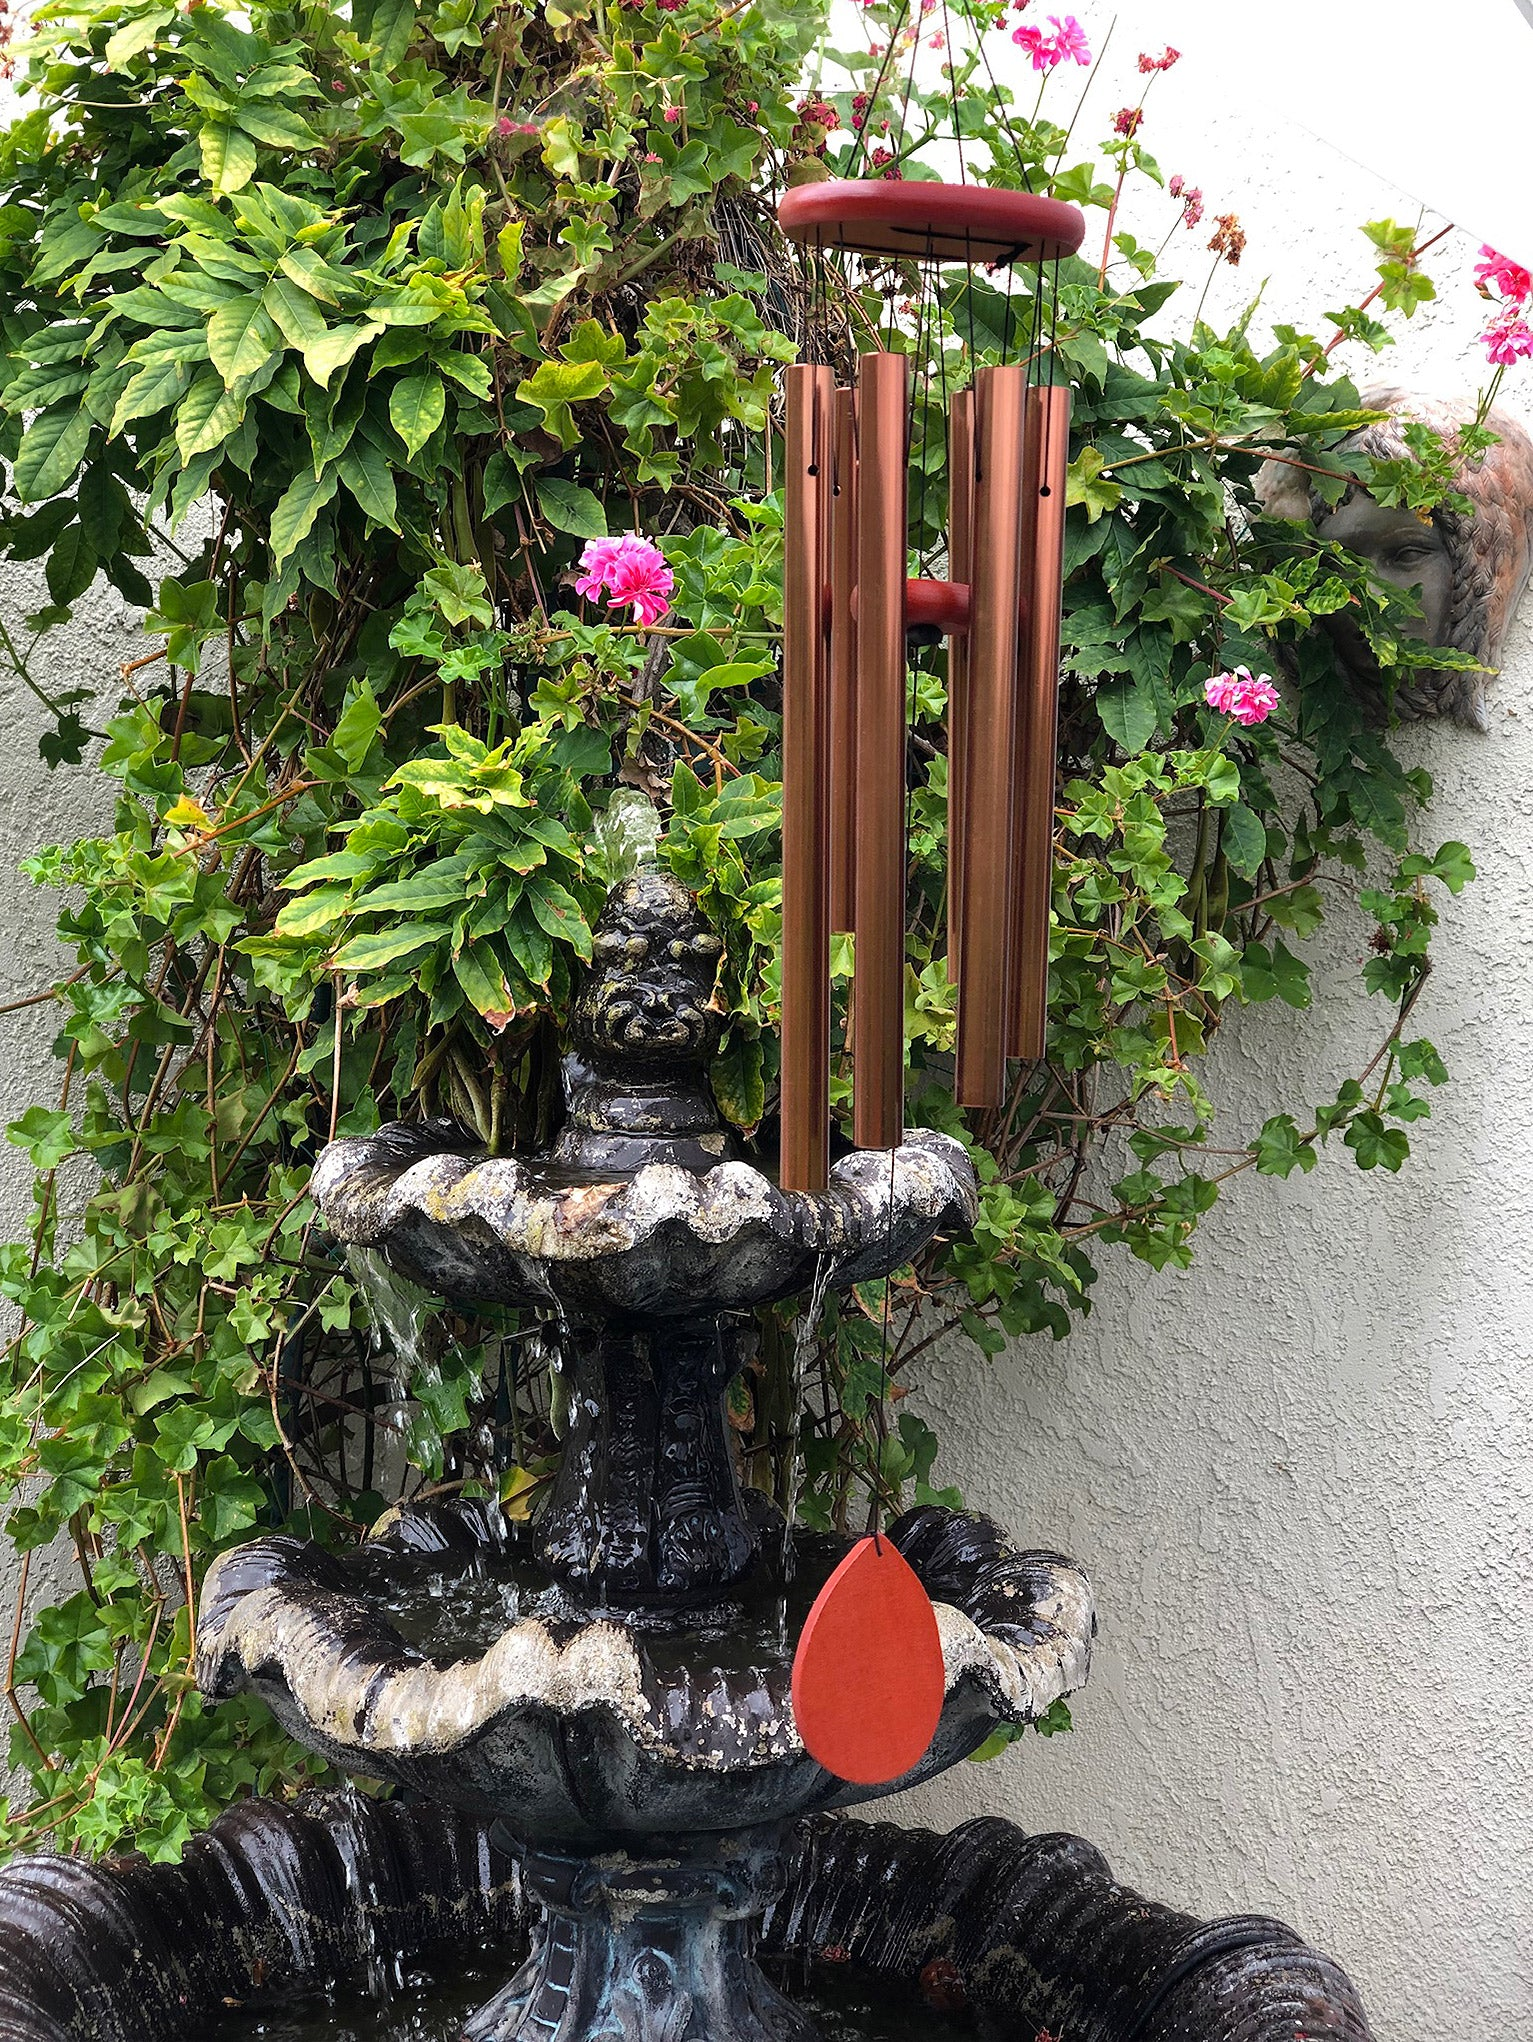 wind chime by fountain